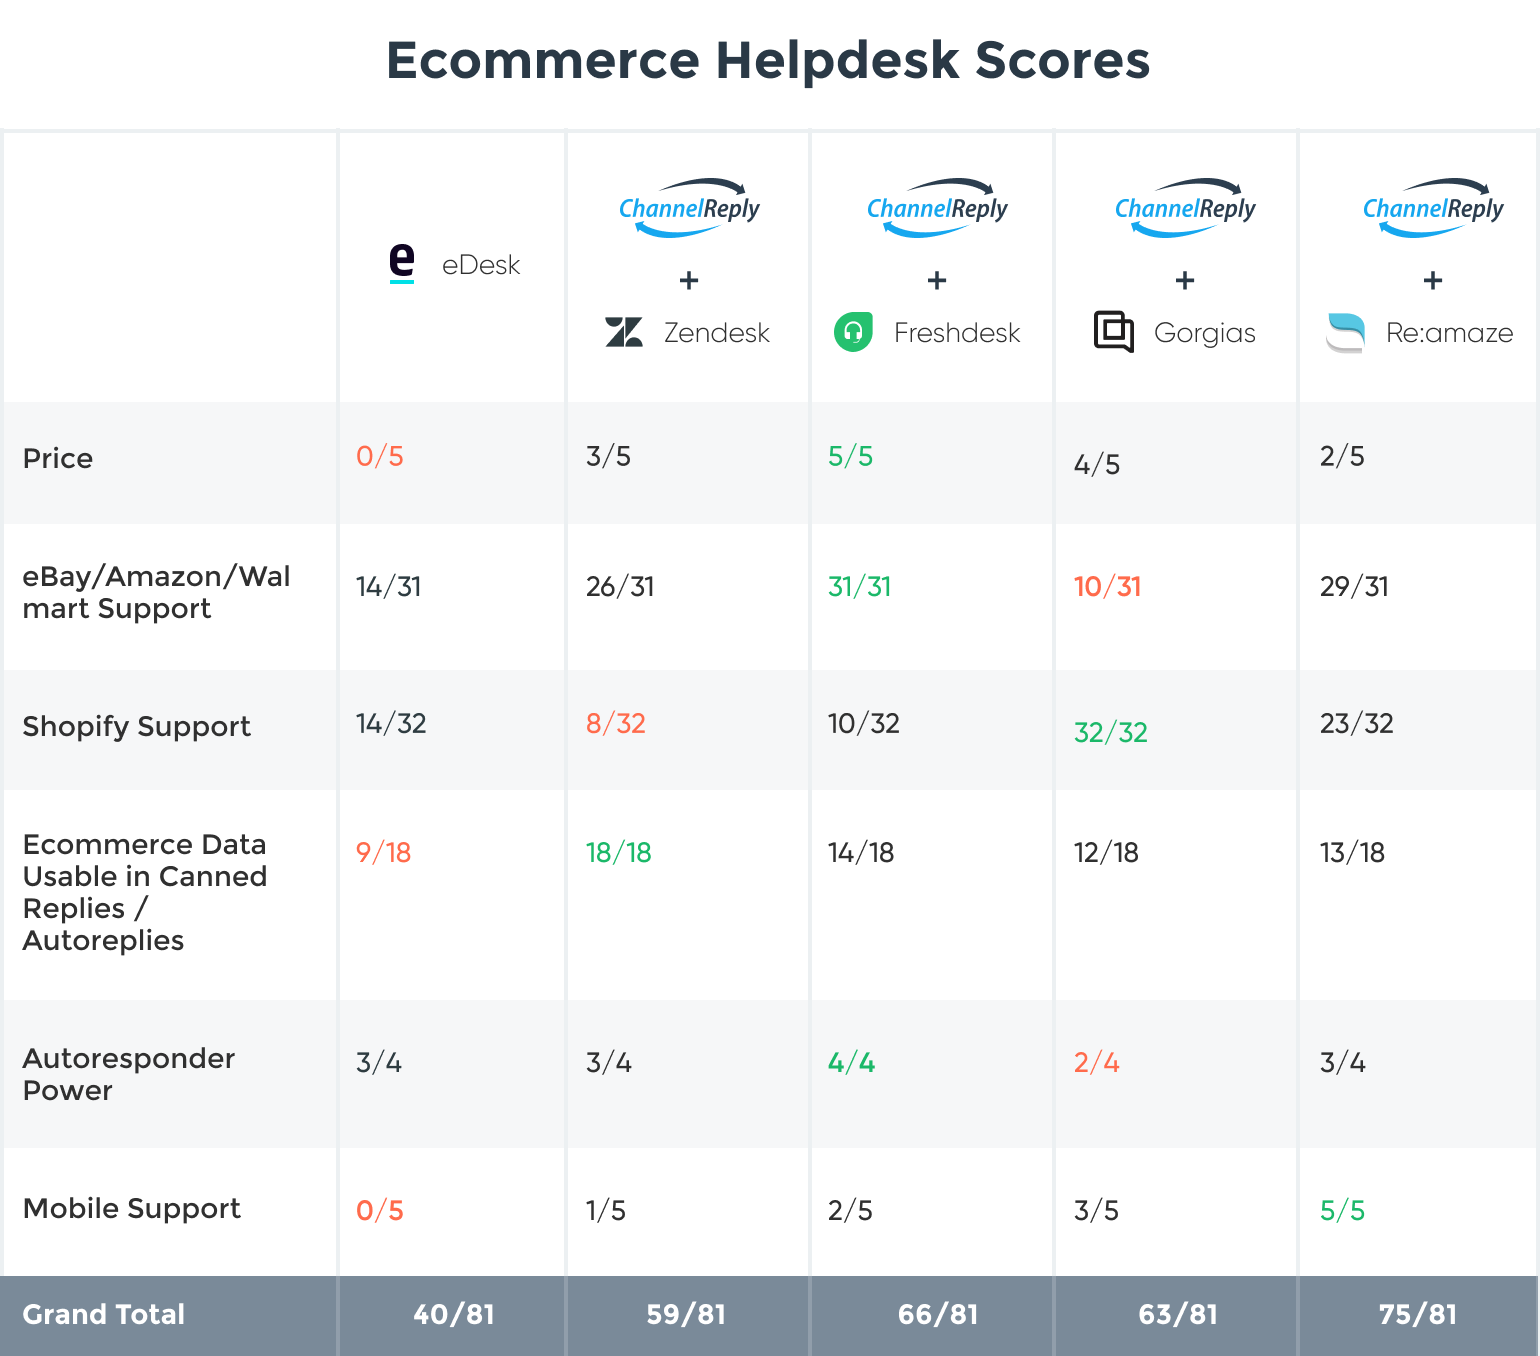 eDesk Alternatives Comparison Chart: Zendesk, Freshdesk, Gorgias, and Re:amaze